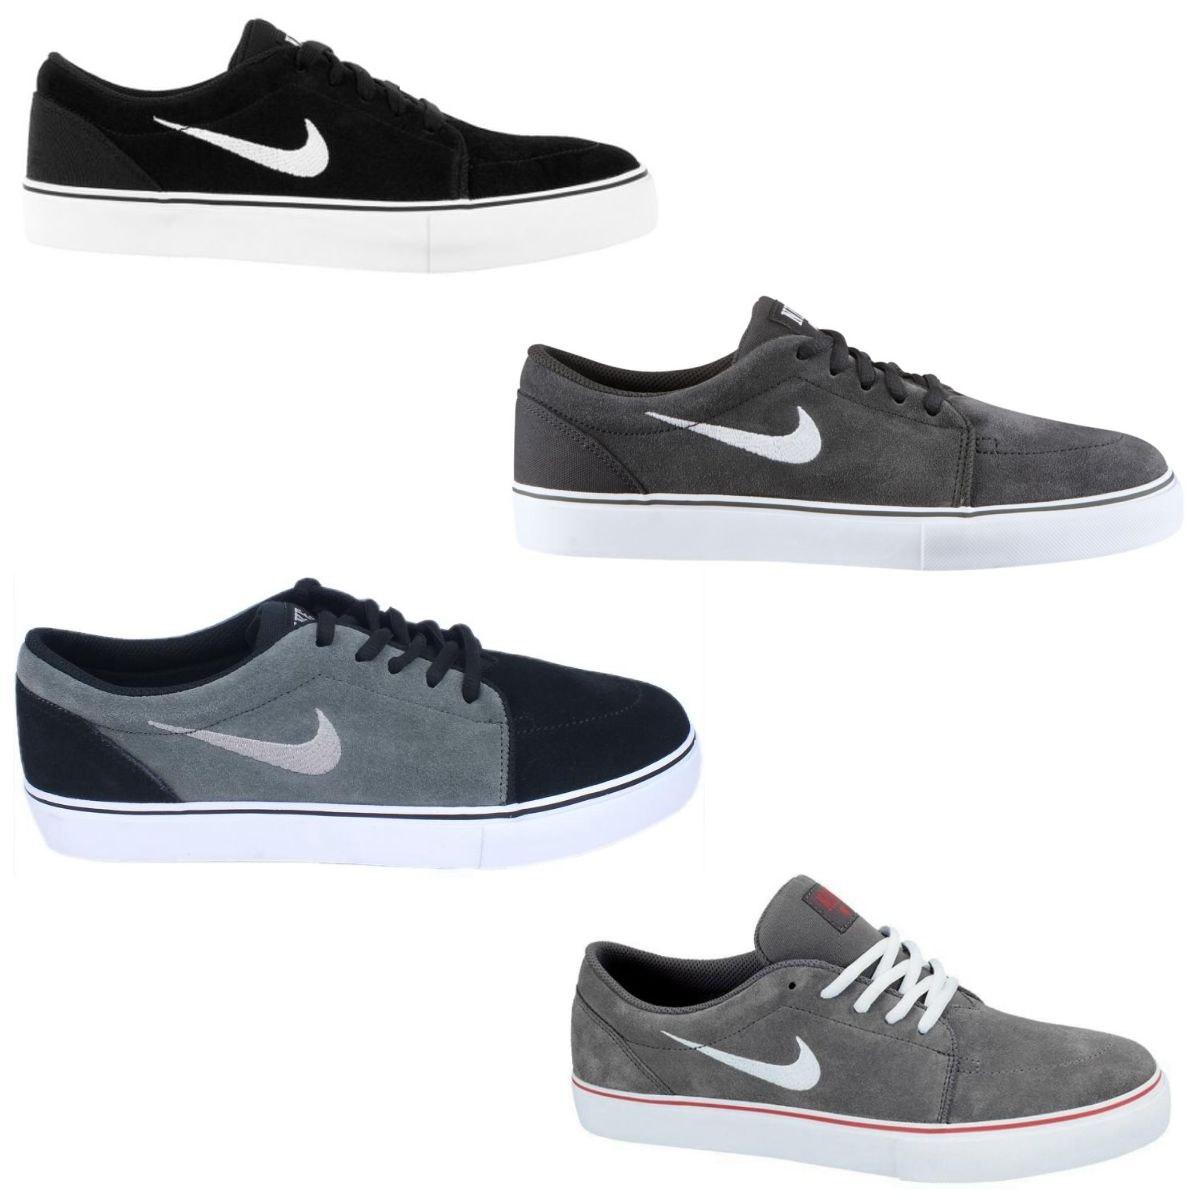 nike satire schuhe turnschuhe sneaker herren schwarz grau ebay. Black Bedroom Furniture Sets. Home Design Ideas